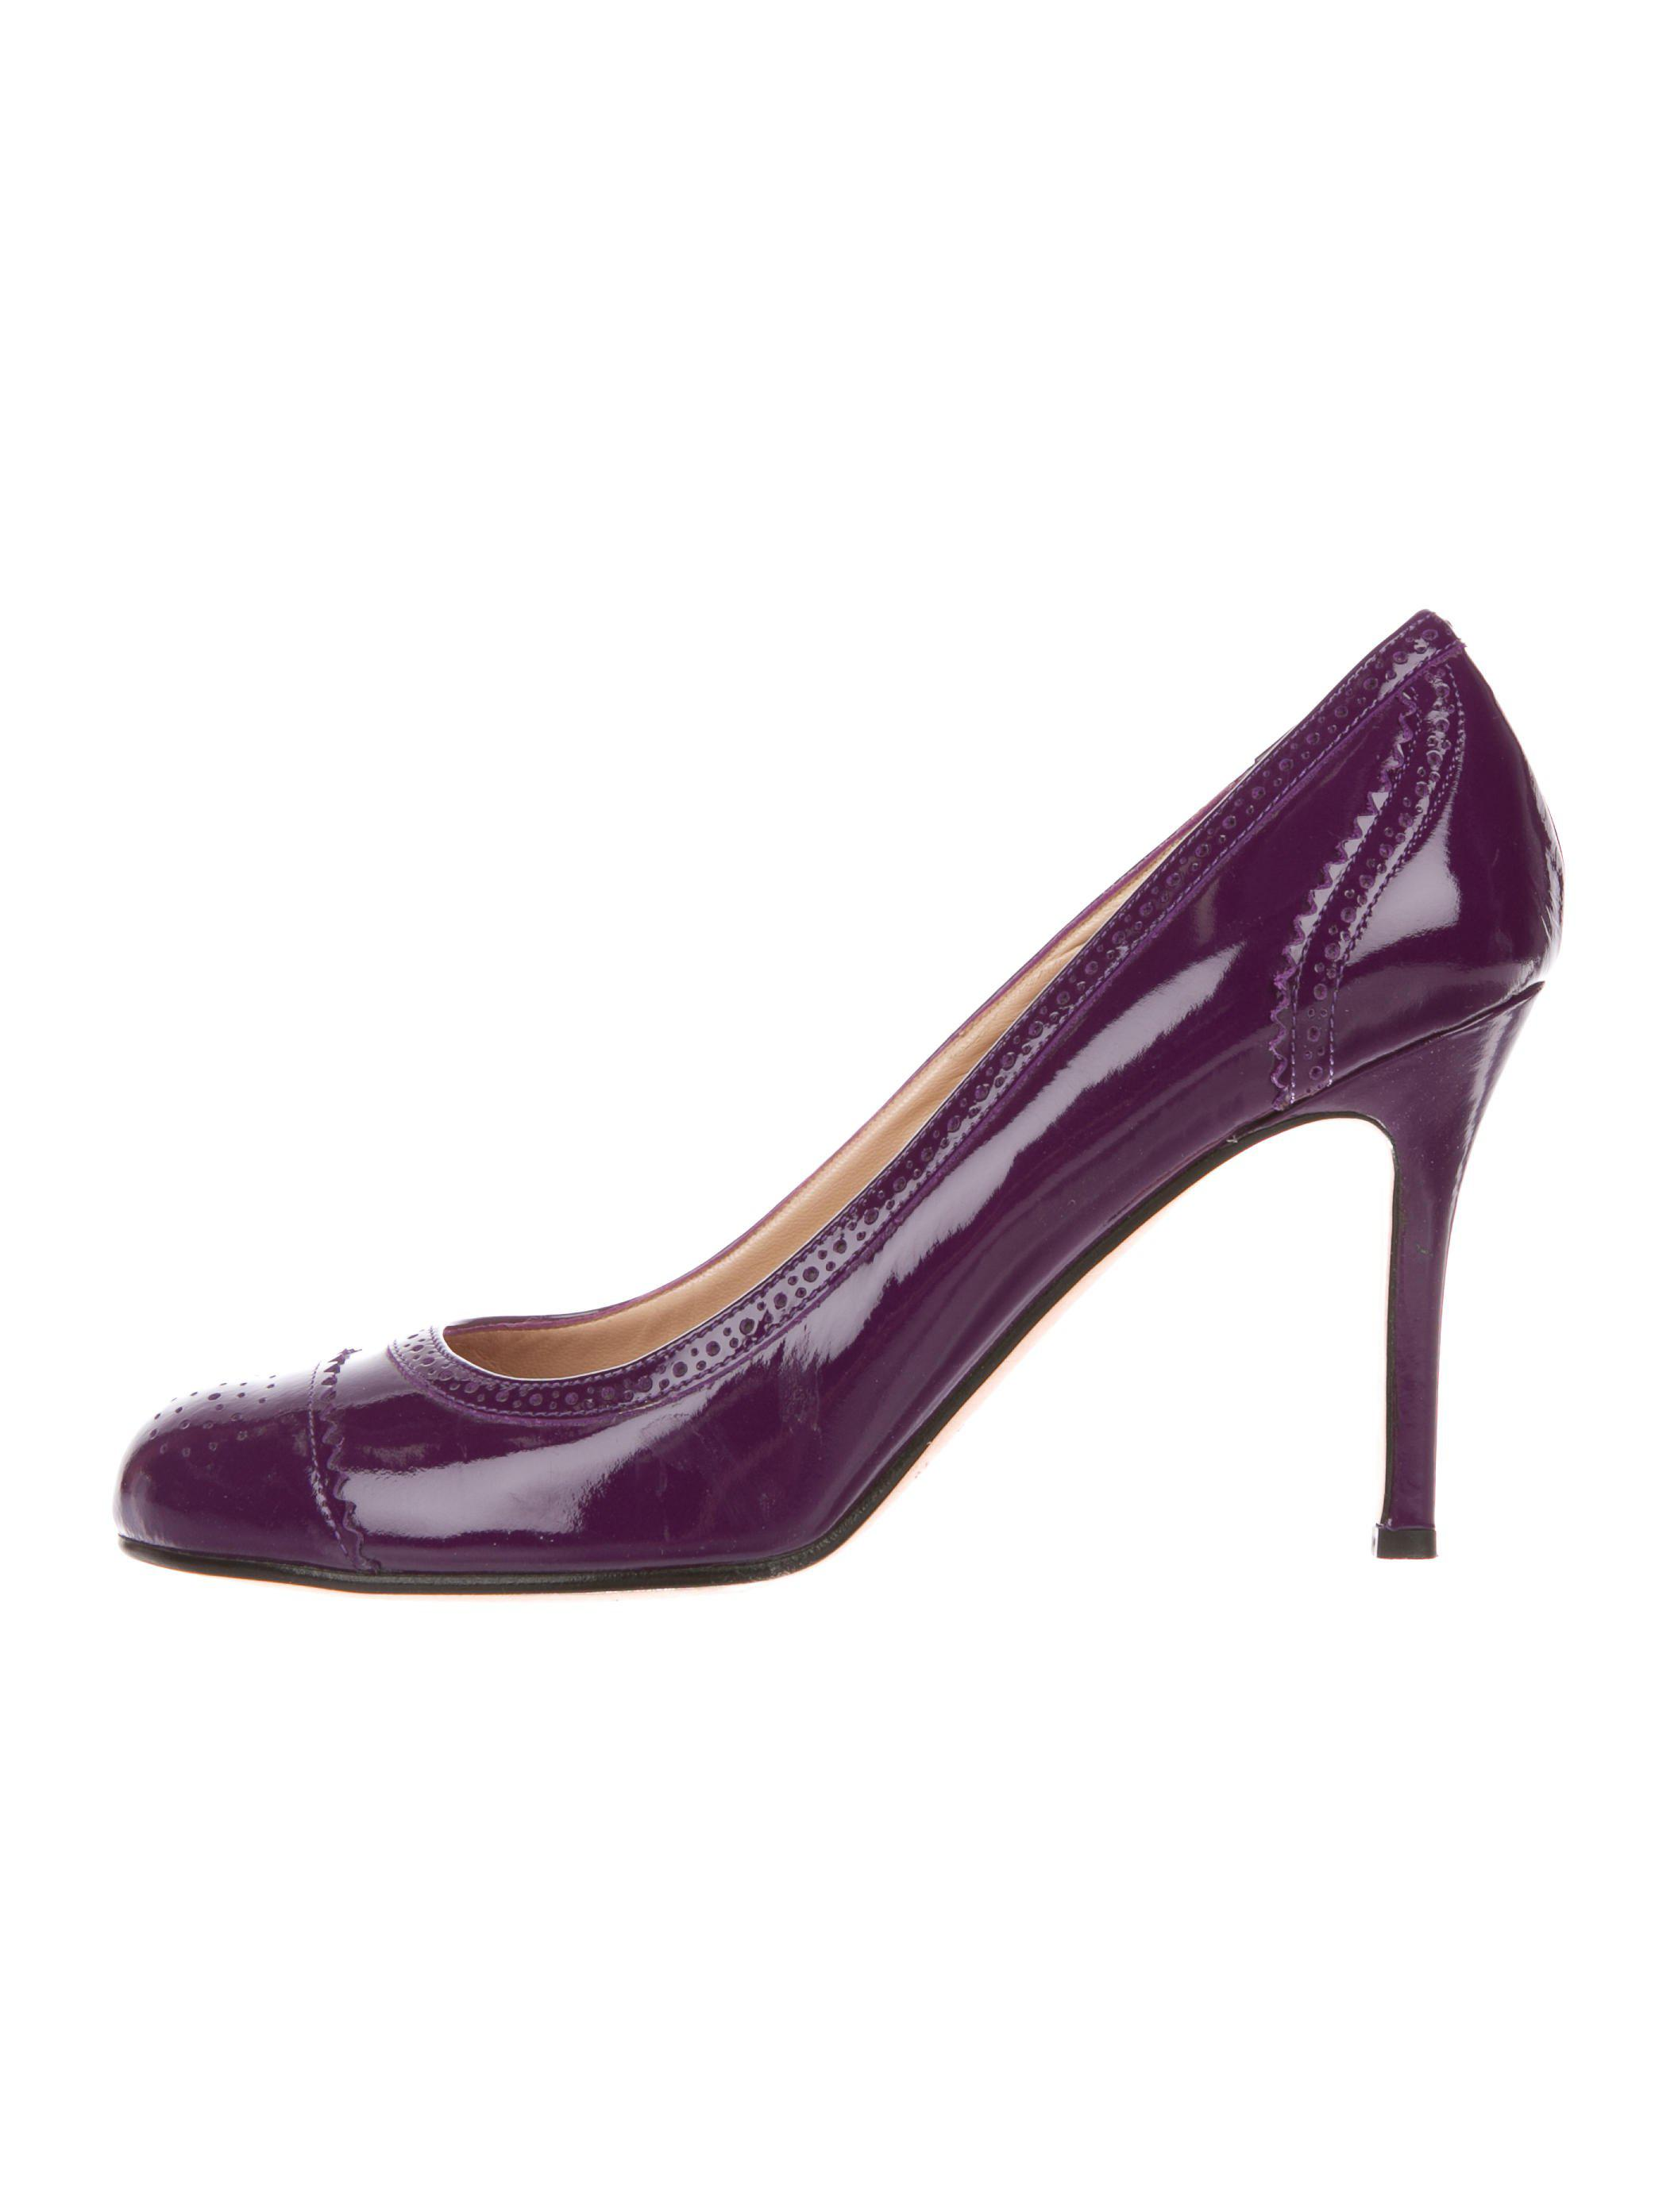 d1eba1ceeeaa Lyst - Kate Spade Patent Leather Brogue Pumps in Purple